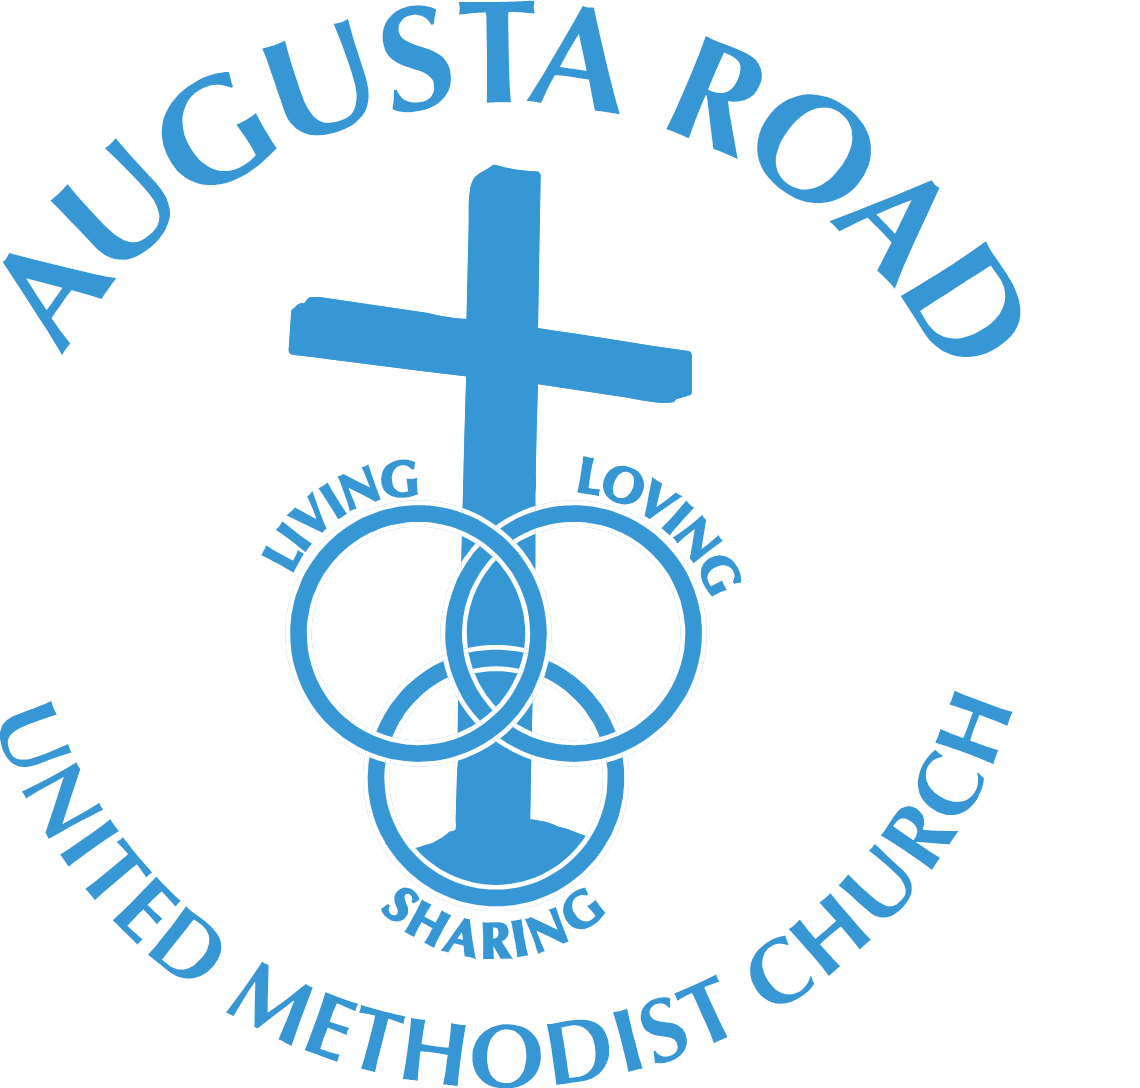 Augusta Road United Methodist Church